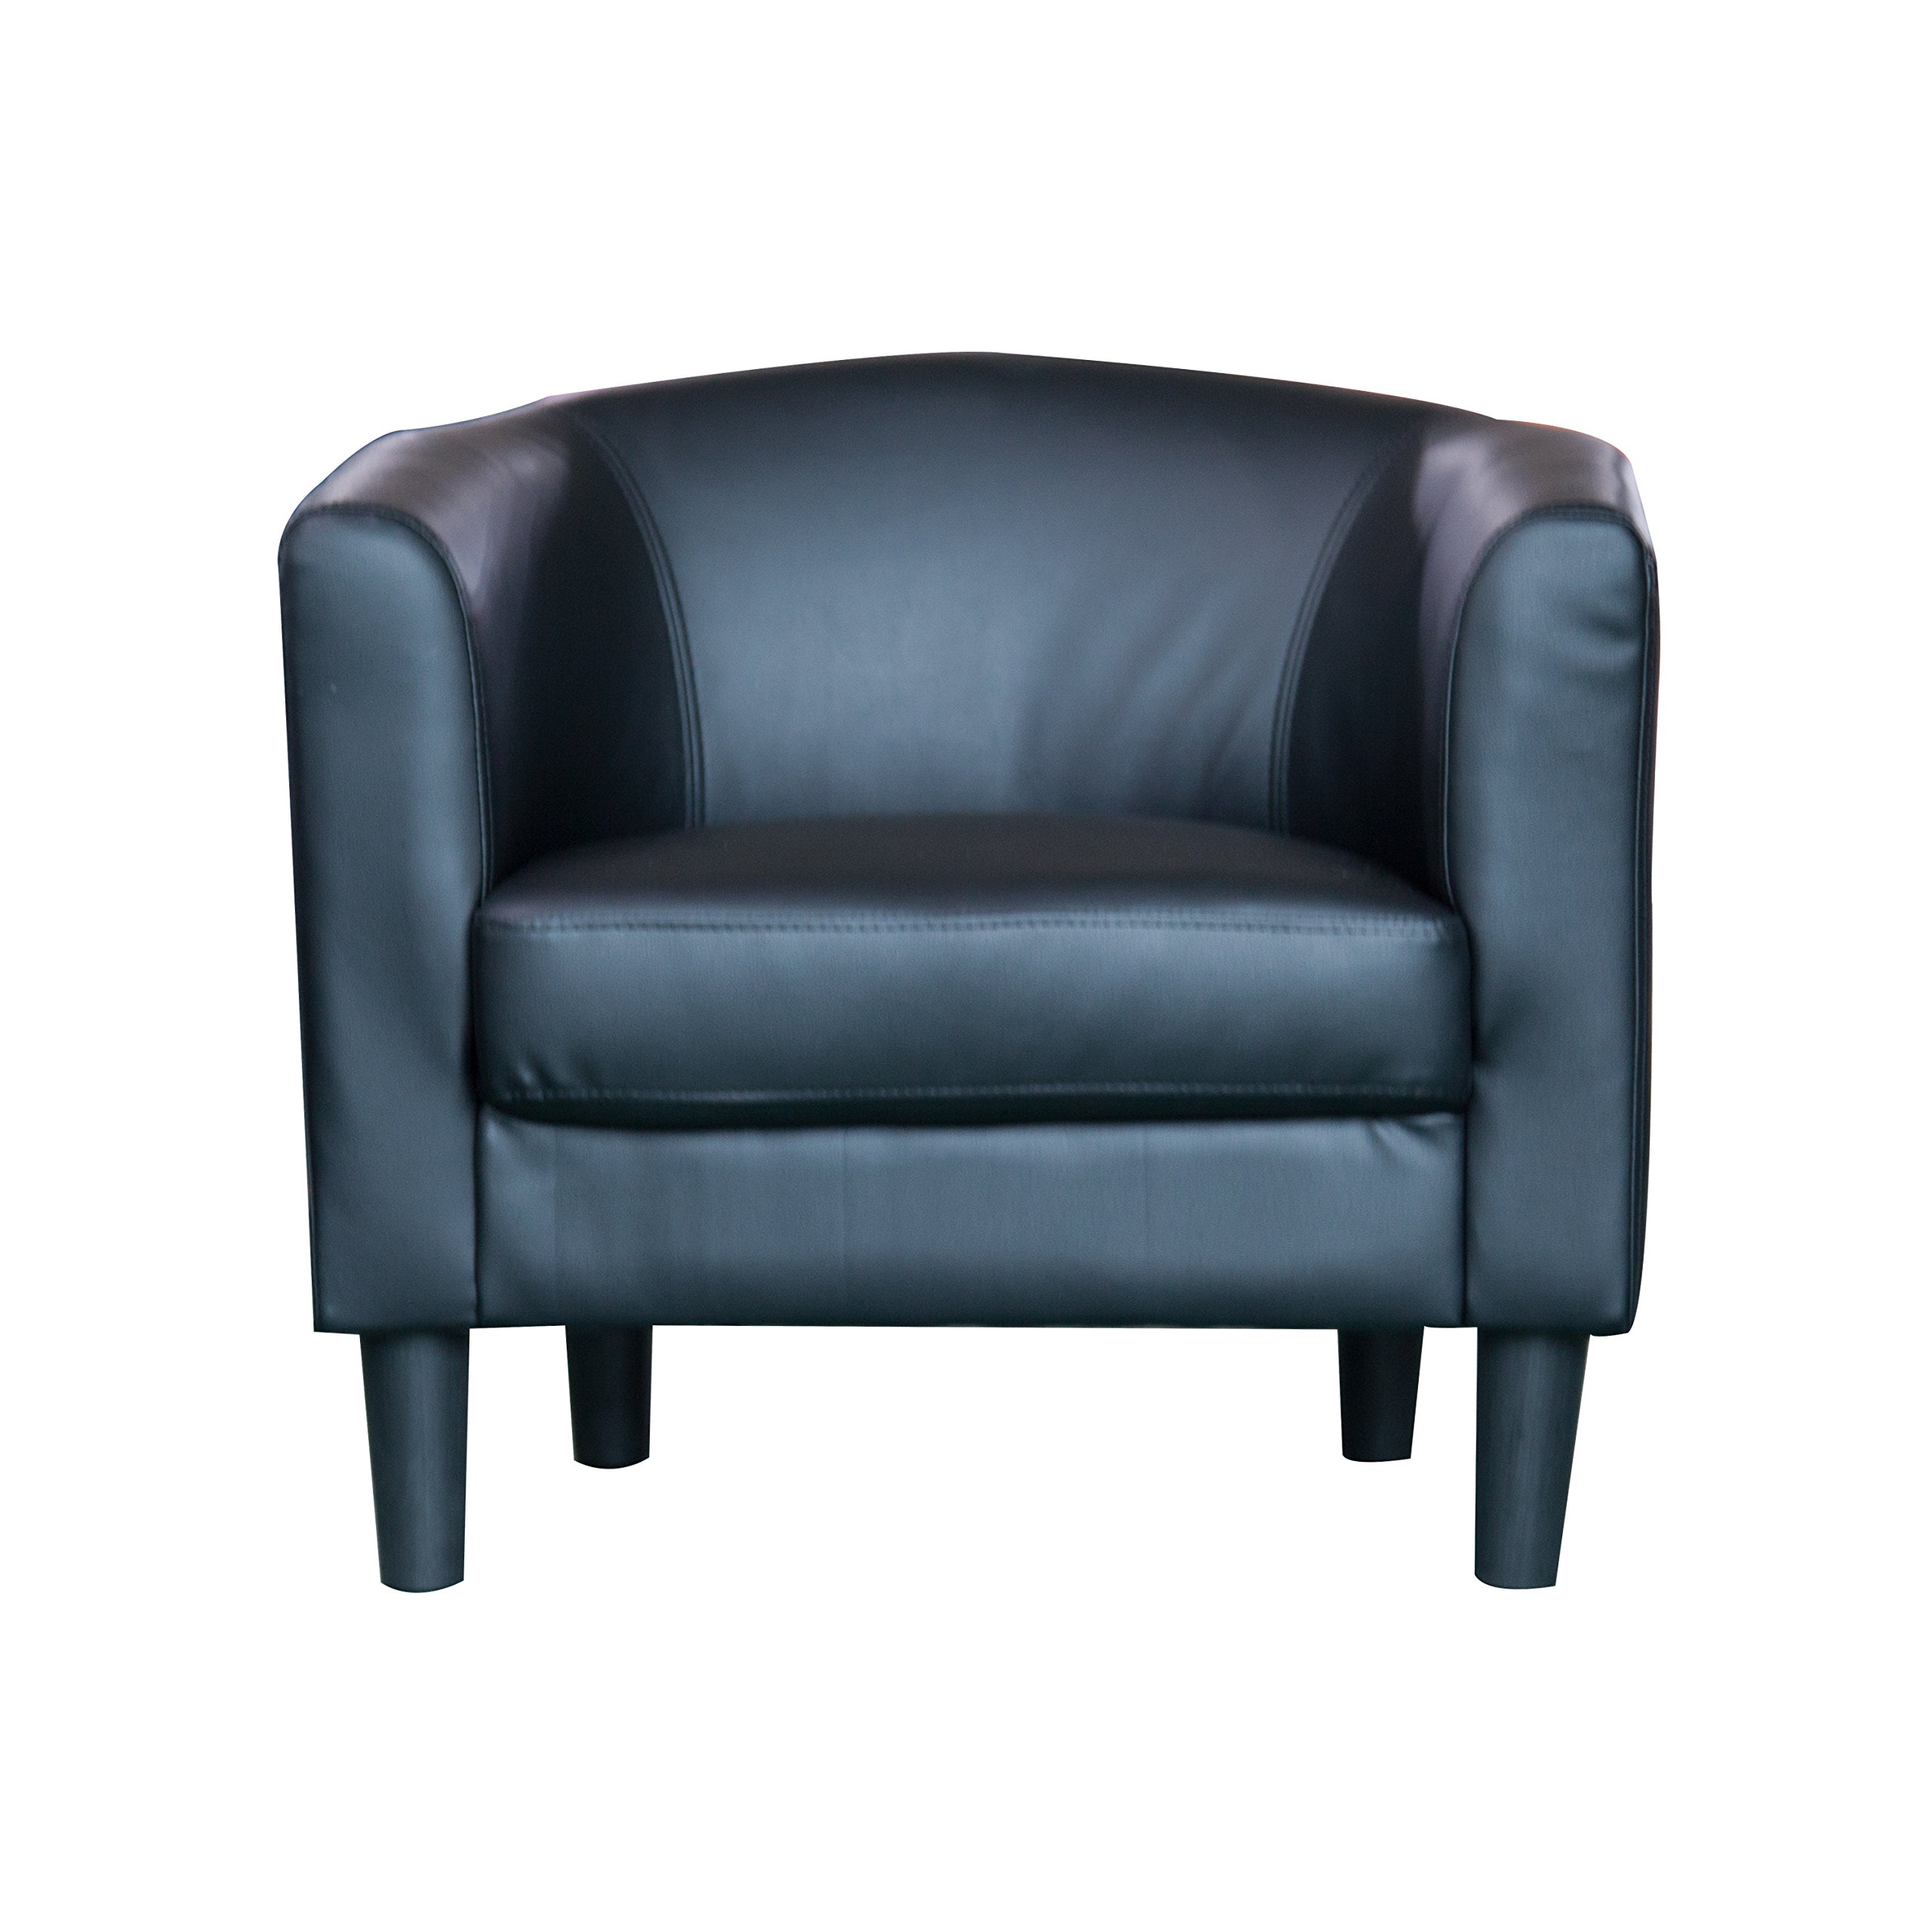 Barrel-Style Accent Chair-Black